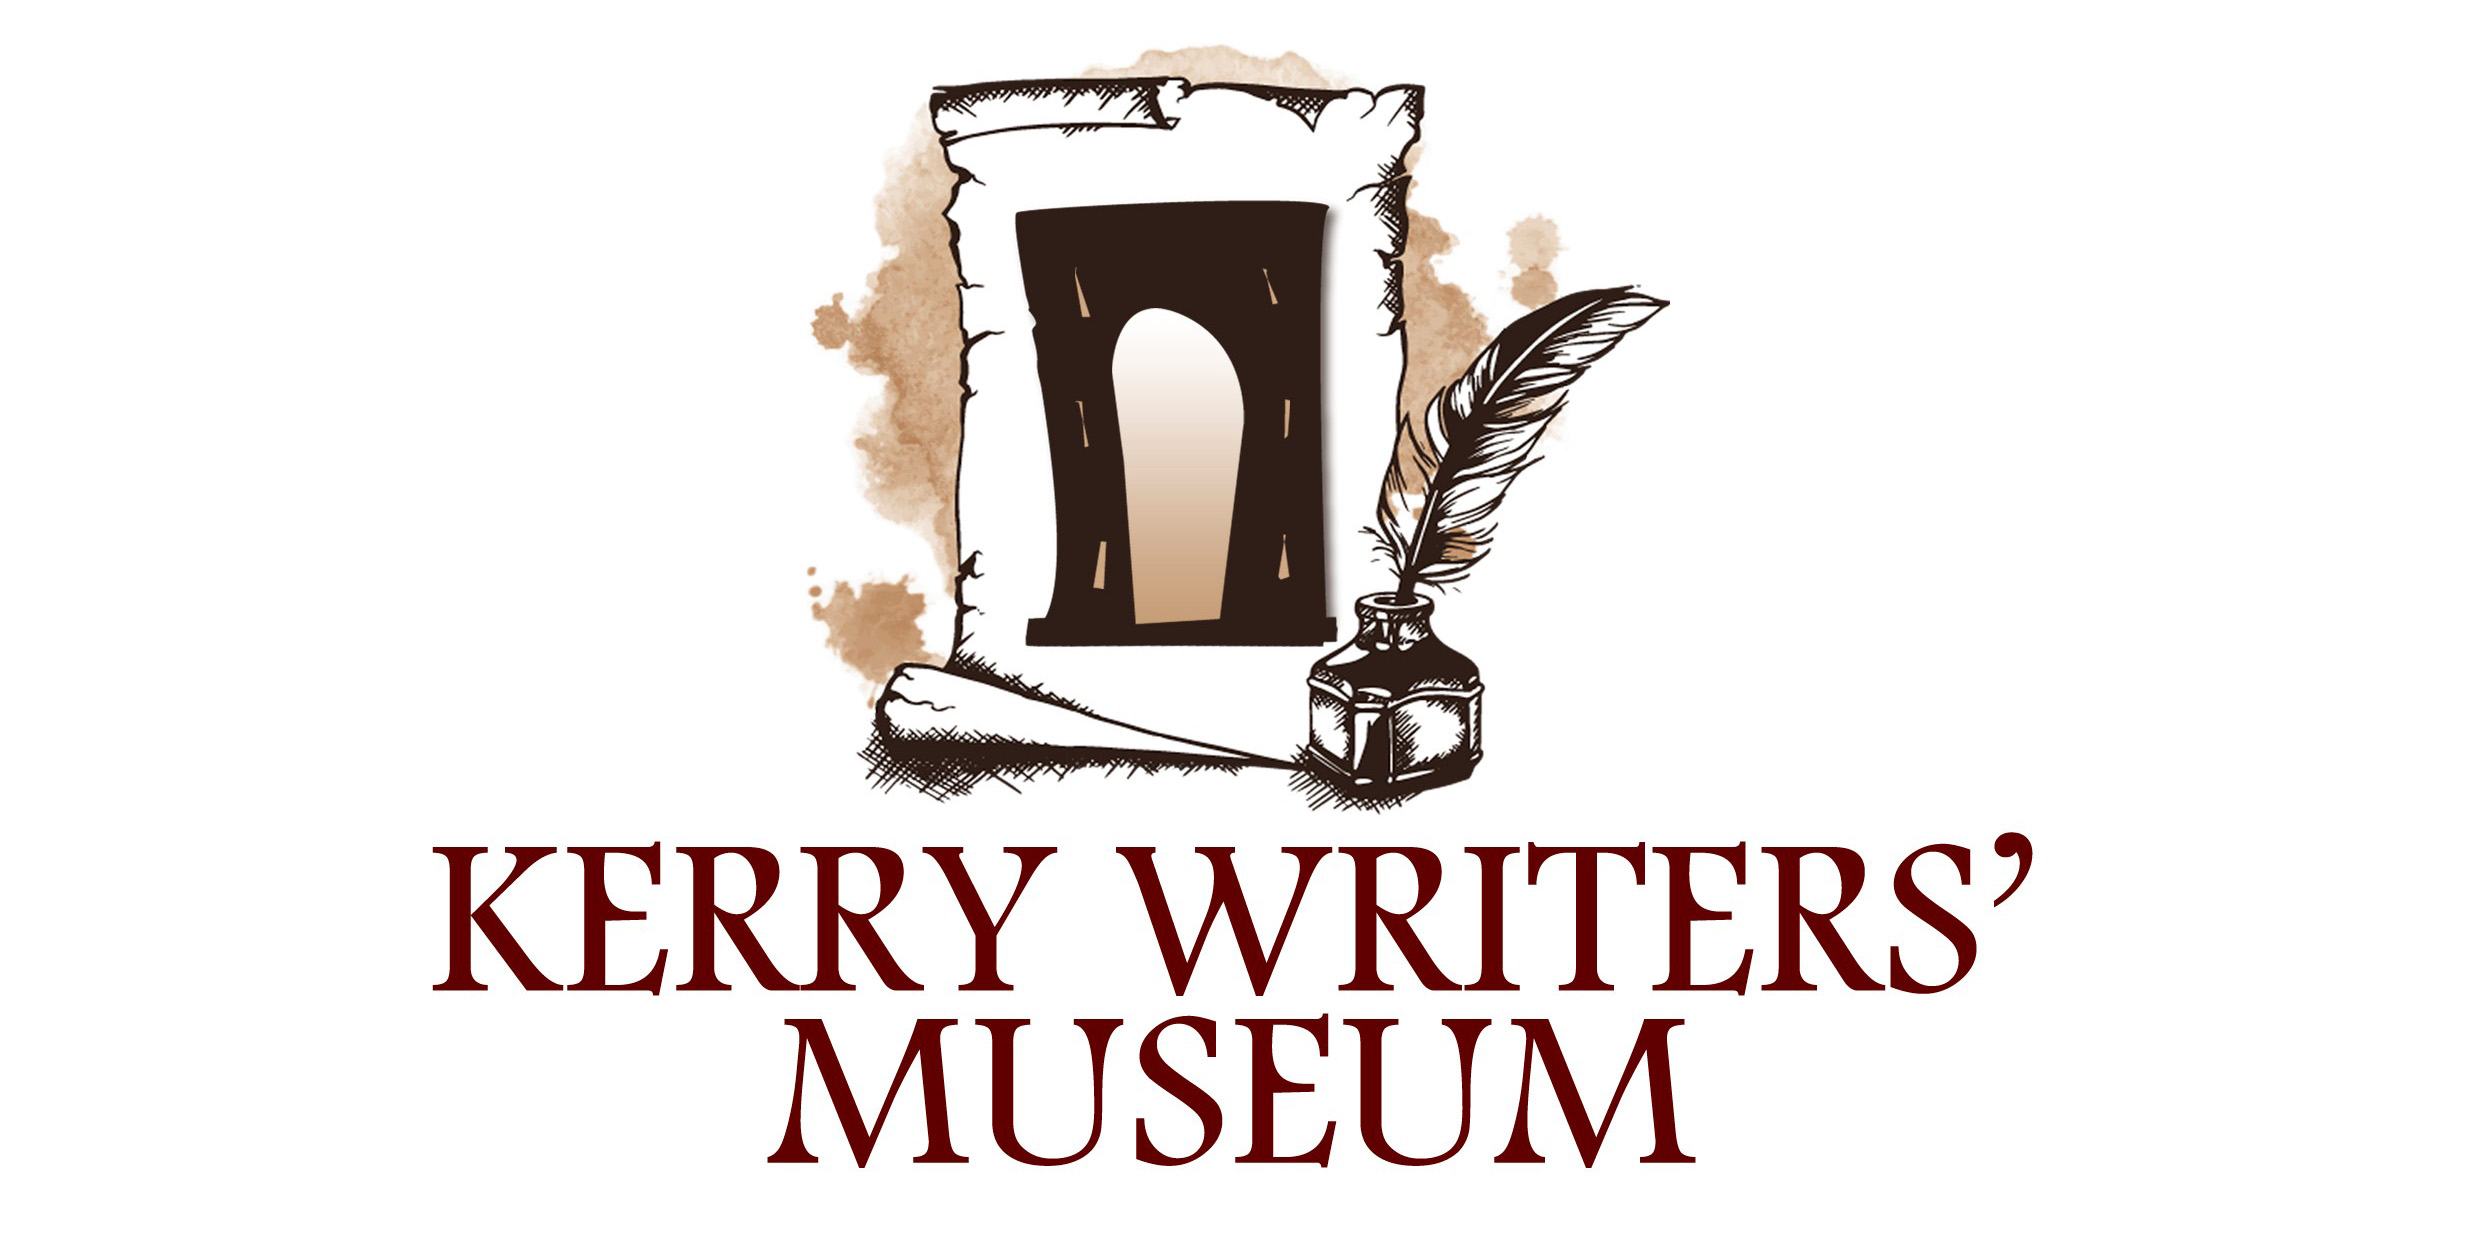 Kerry Writers Museum